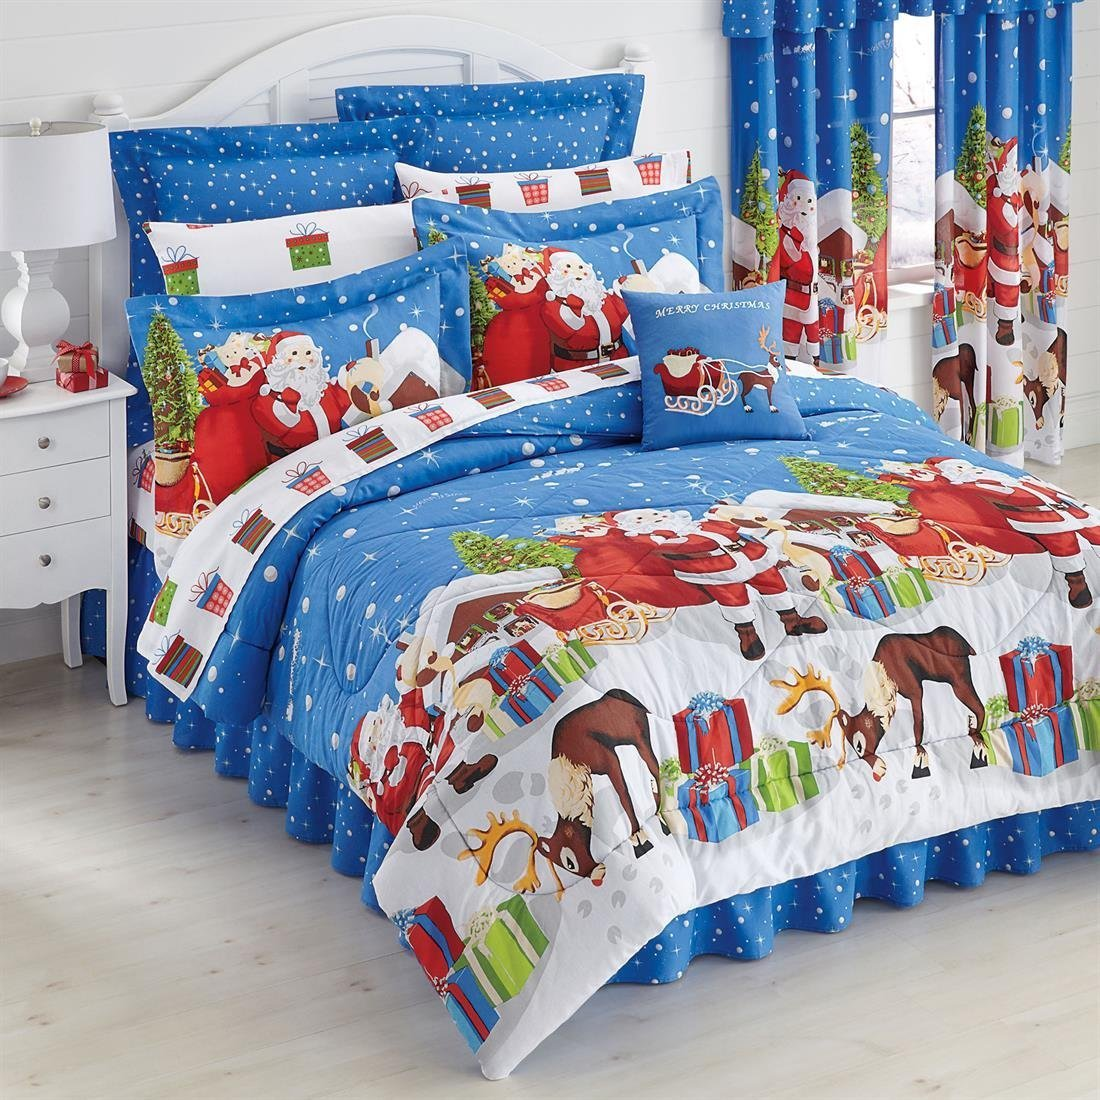 amazoncom blue santa claus reindeer christmas presents twin comforter set 6 piece bed in a bag home kitchen - Christmas Bedding Holiday Bedding